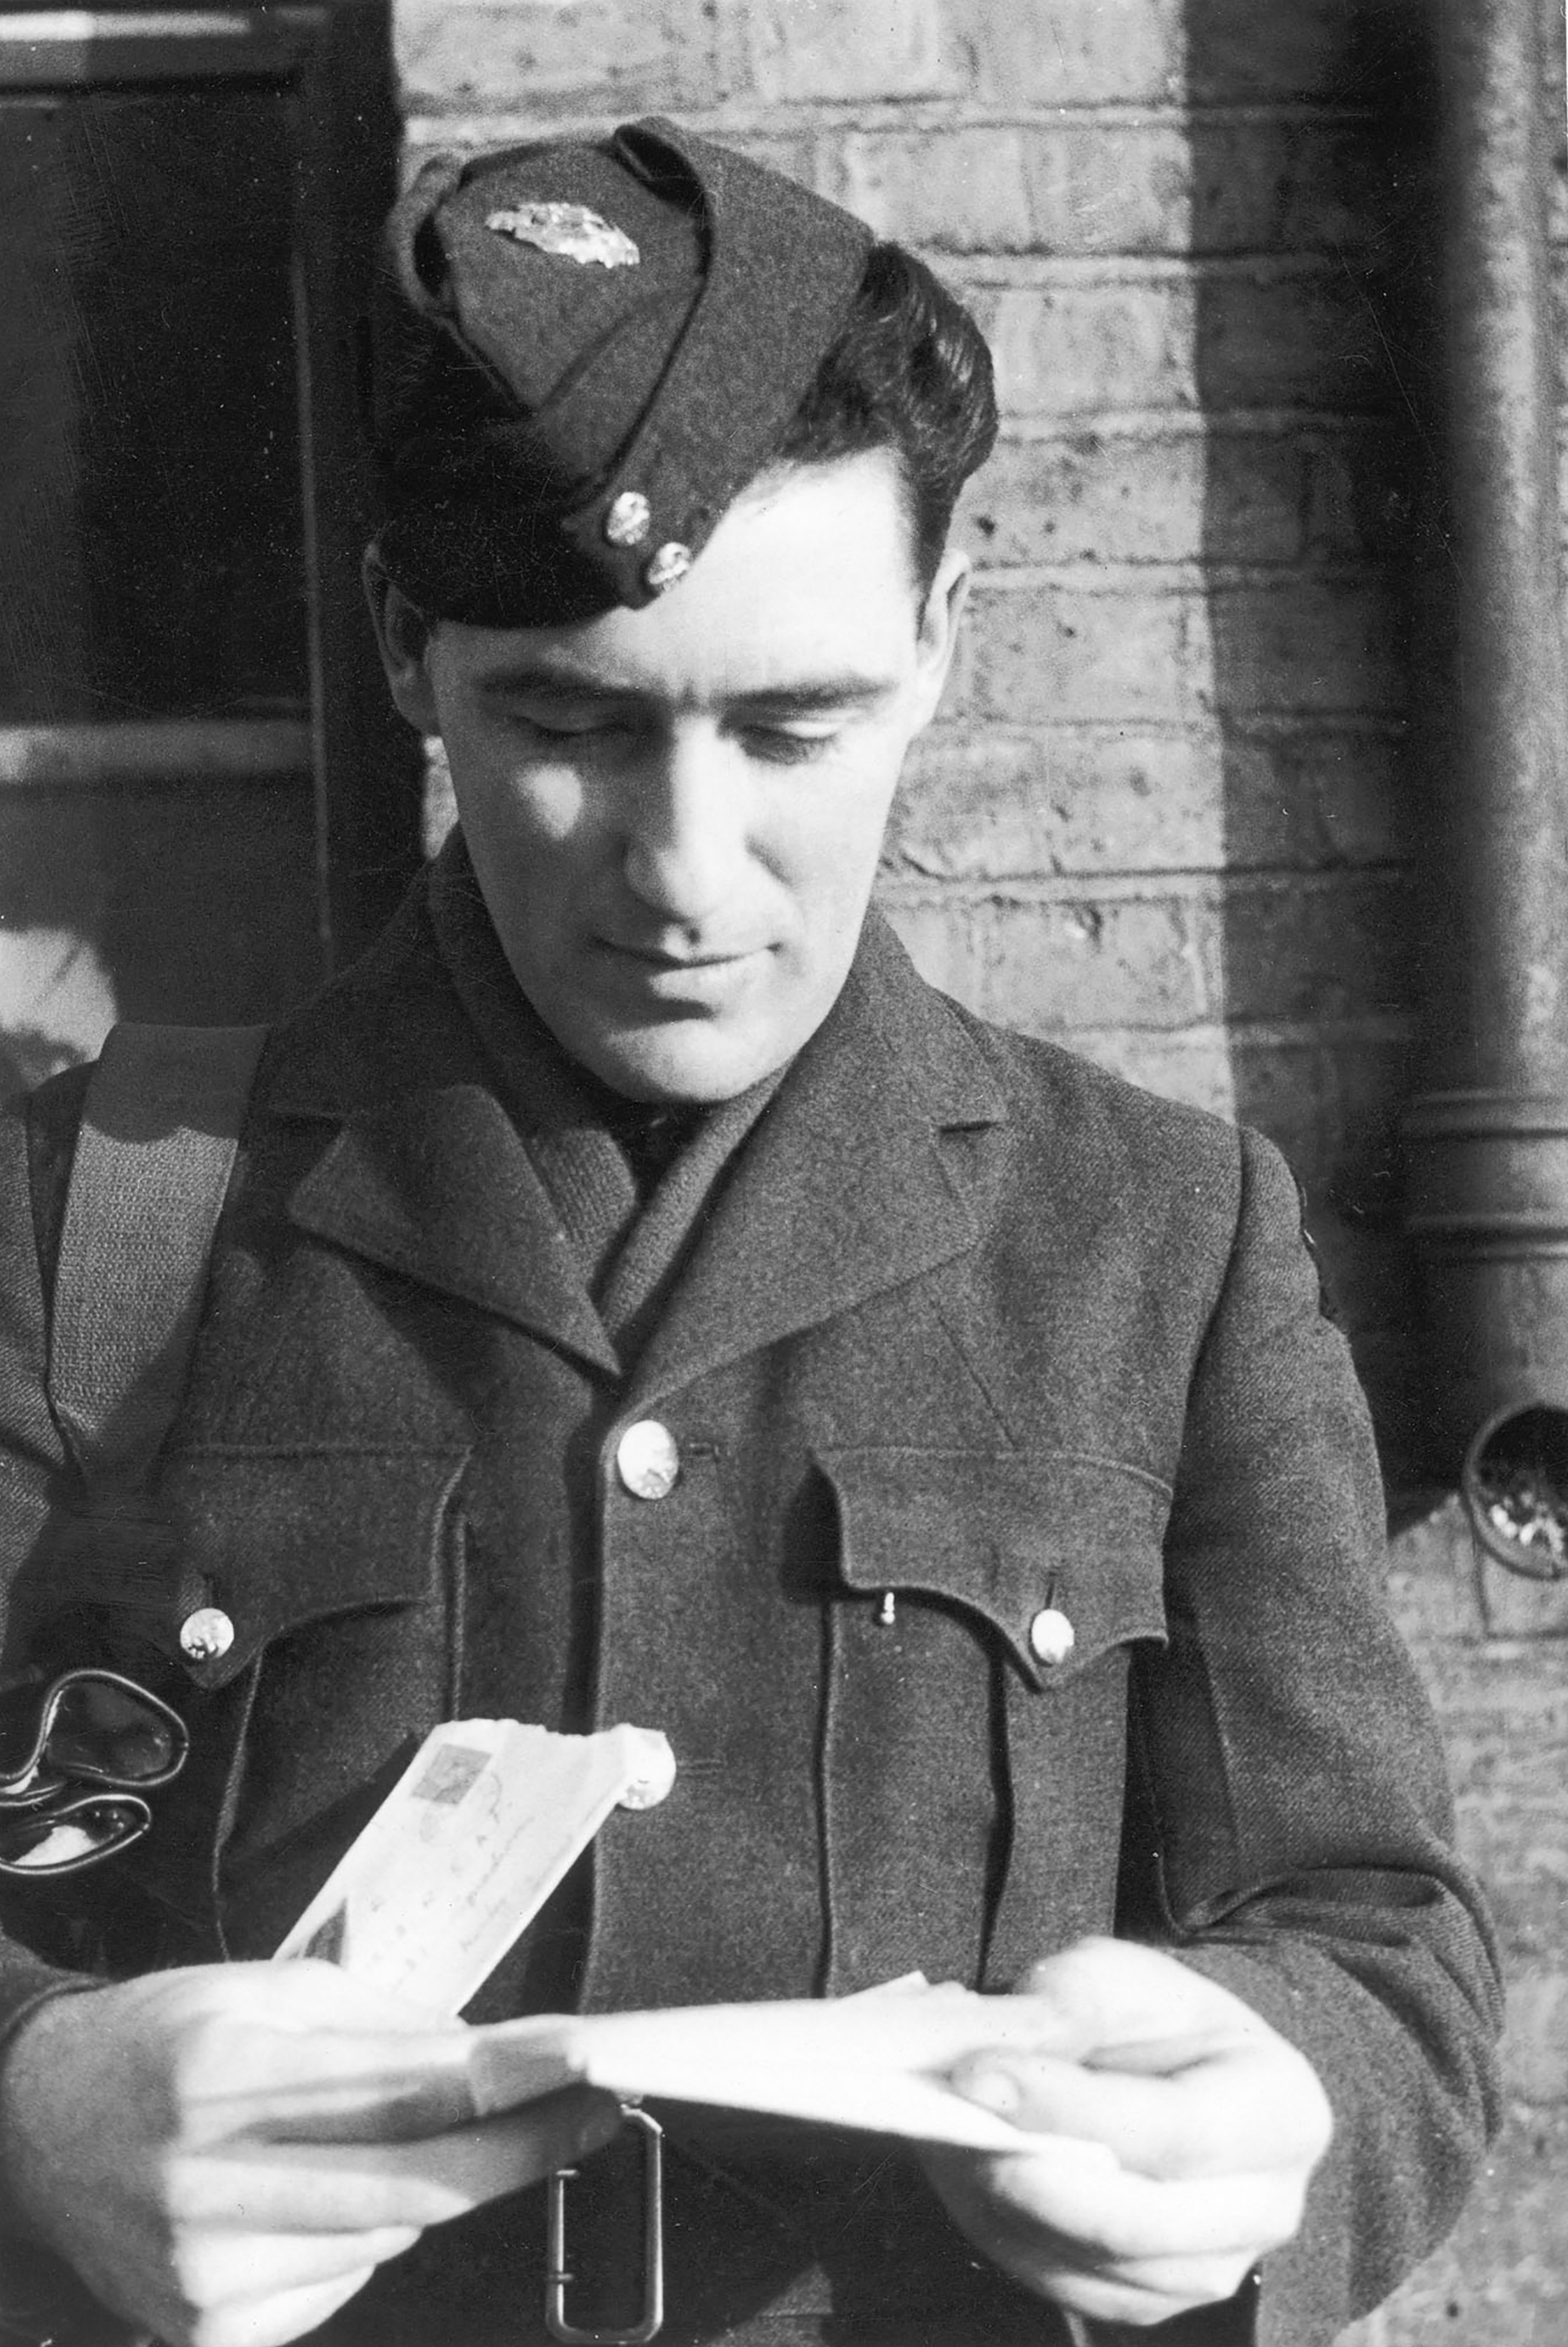 Leading Aircraftman Ross Coleman (Winnipeg, Manitoba) is lost in a letter from home on March 23, 1943. The letter arrived while his Spitfire Squadron was on manoeuvres. Mail from home was always the most welcome event of the day.